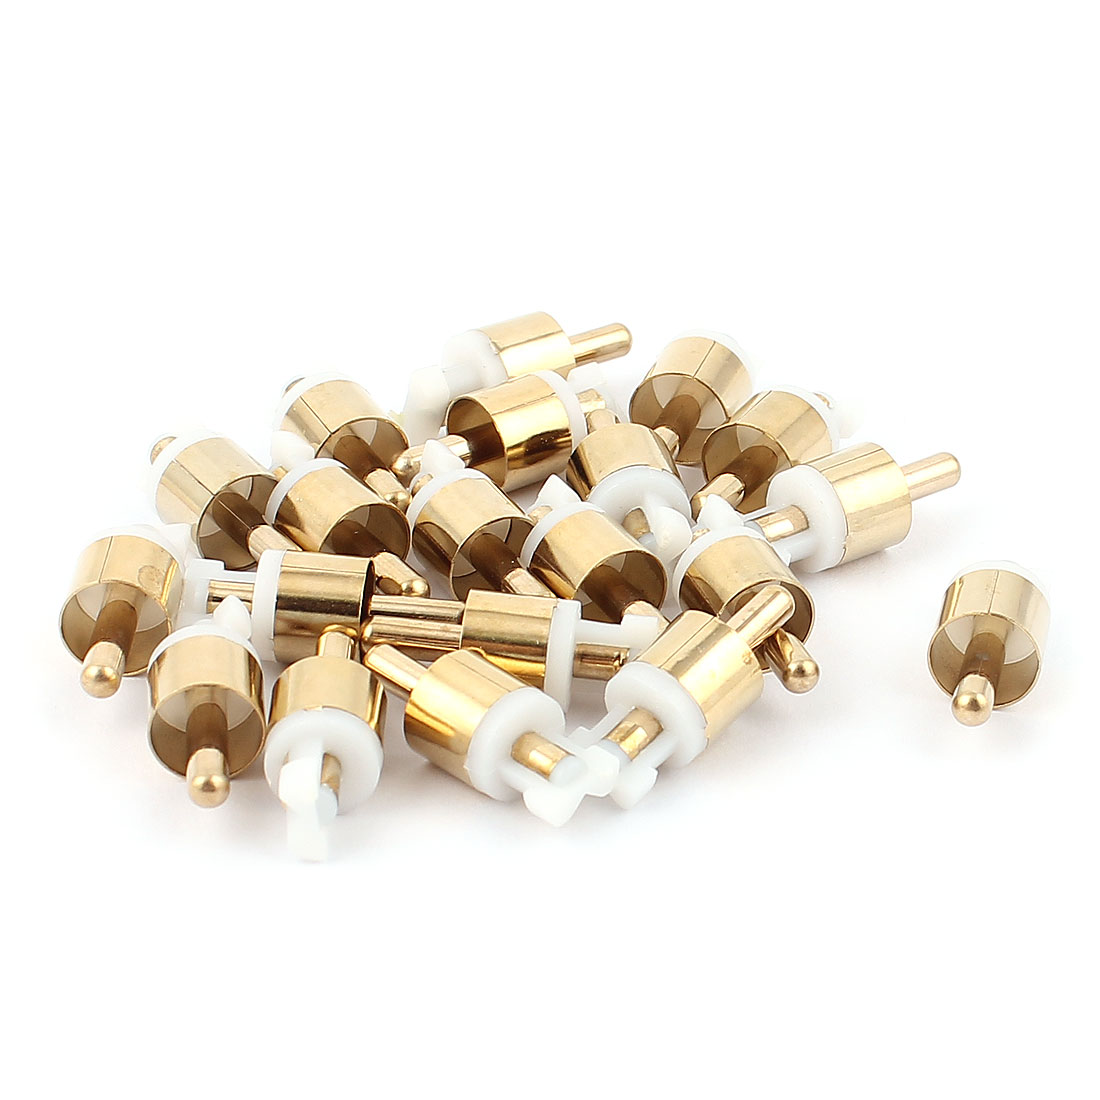 20Pcs Male Plug Head RCA Audio Video Connector Adapter